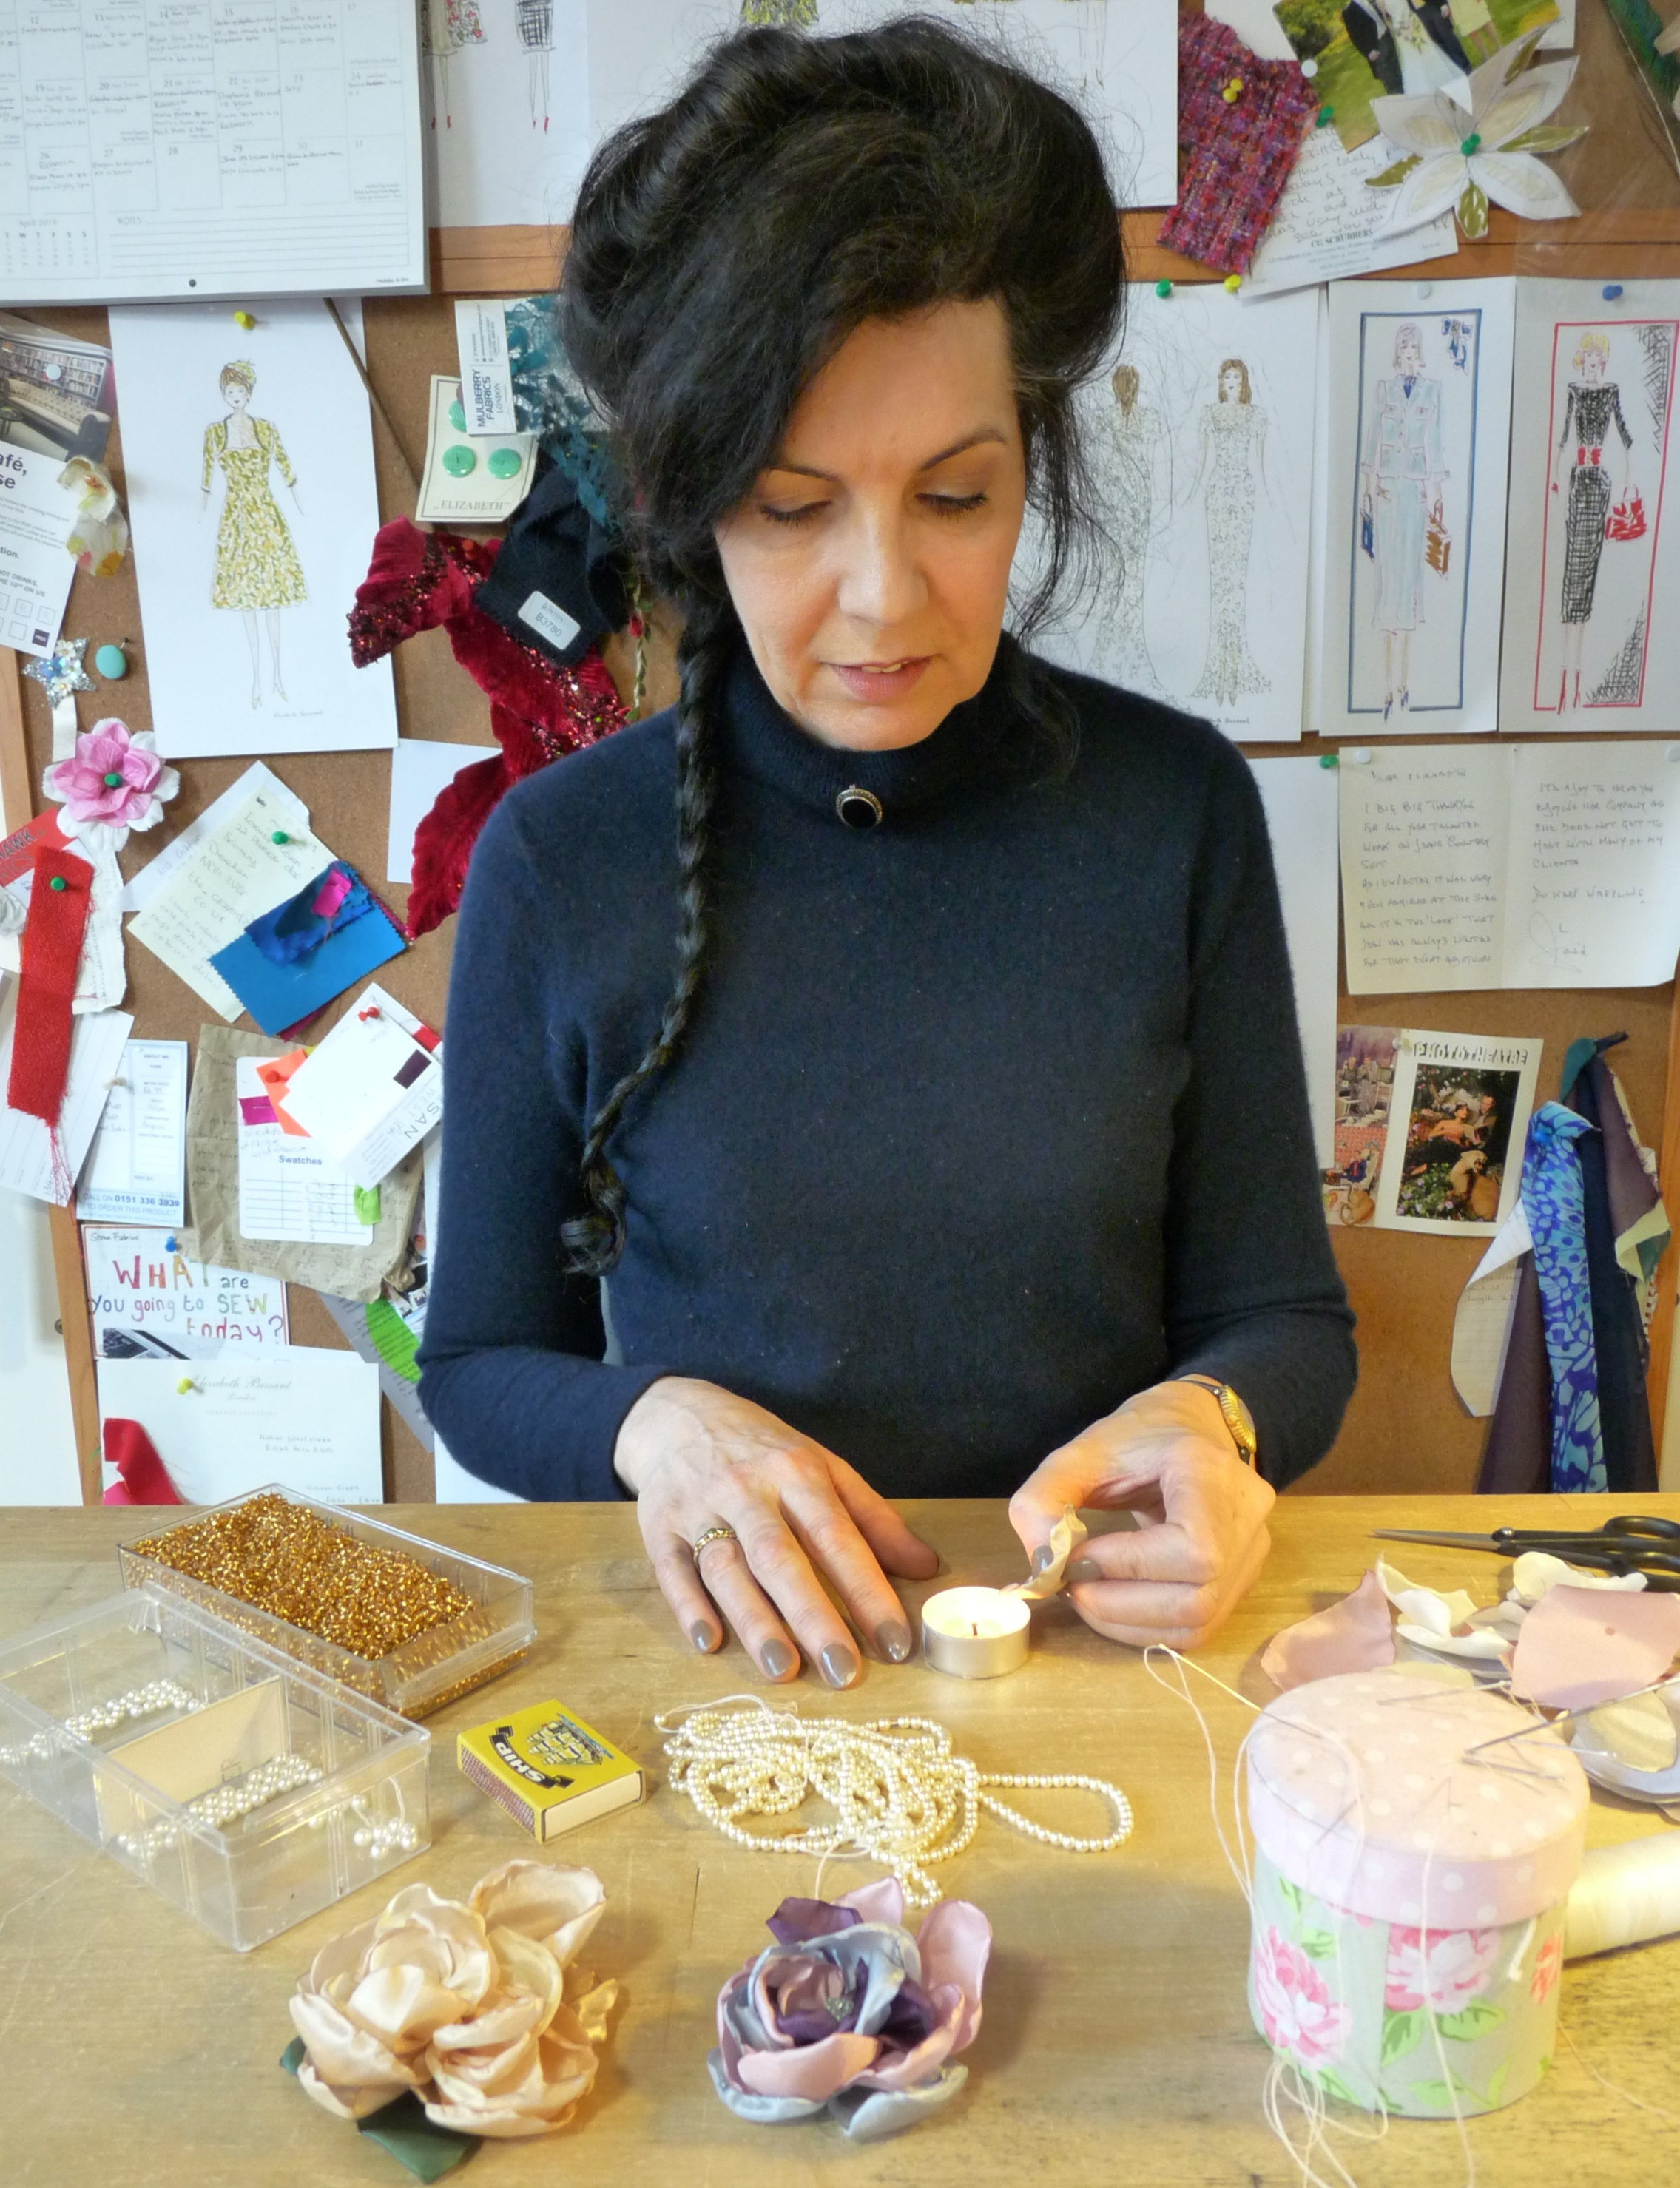 Flower Workshop - How to Make Flowers for Hats and Corsages by Elizabeth Bessant - crafts in London